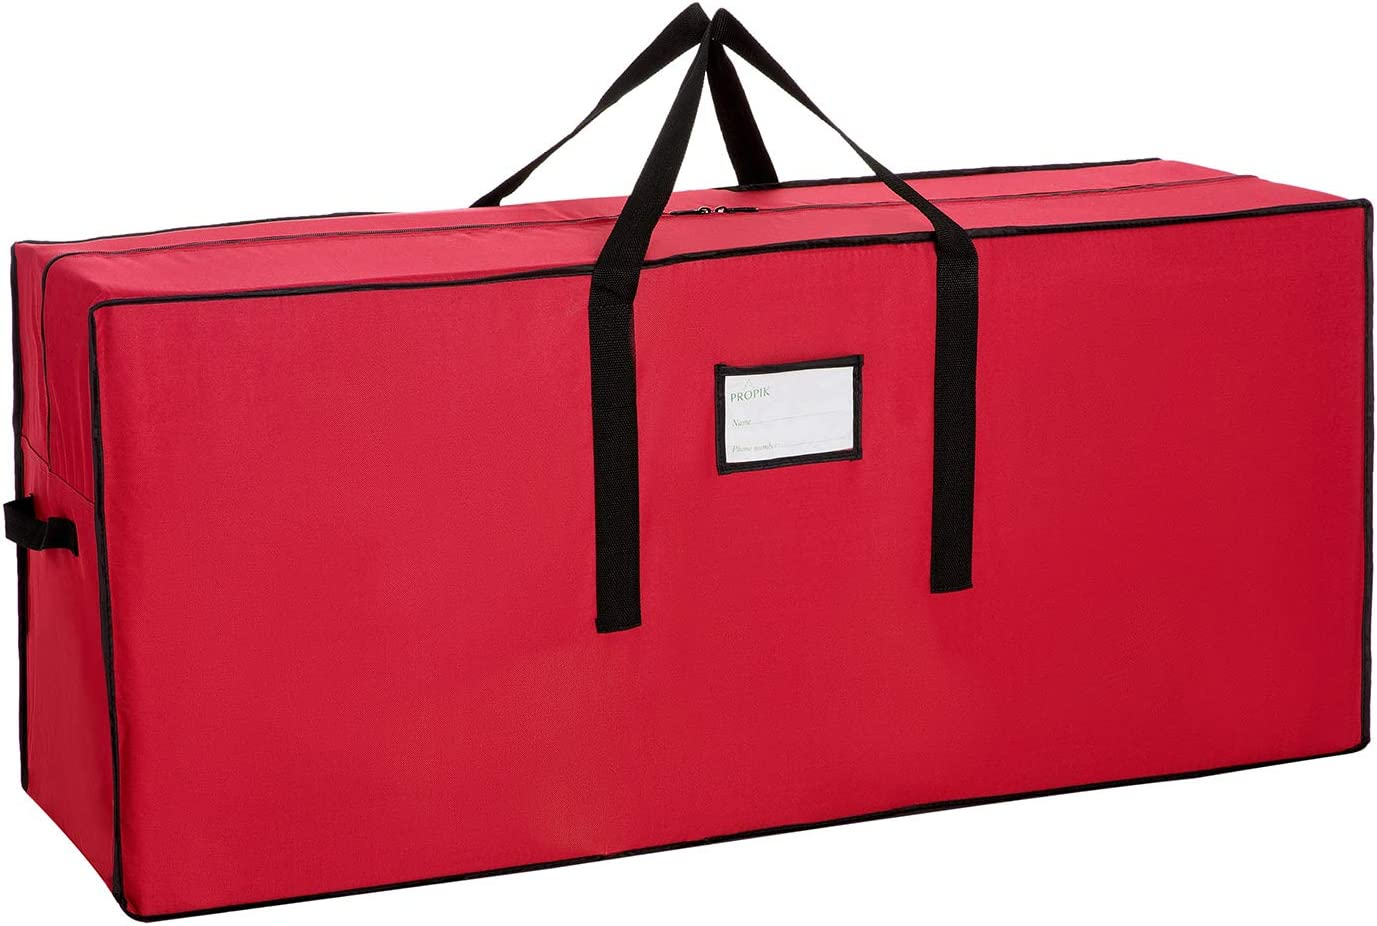 Sattiyrch Christmas Tree Storage Be super welcome It is very popular Bag Red 600D Canvas Heavy Duty